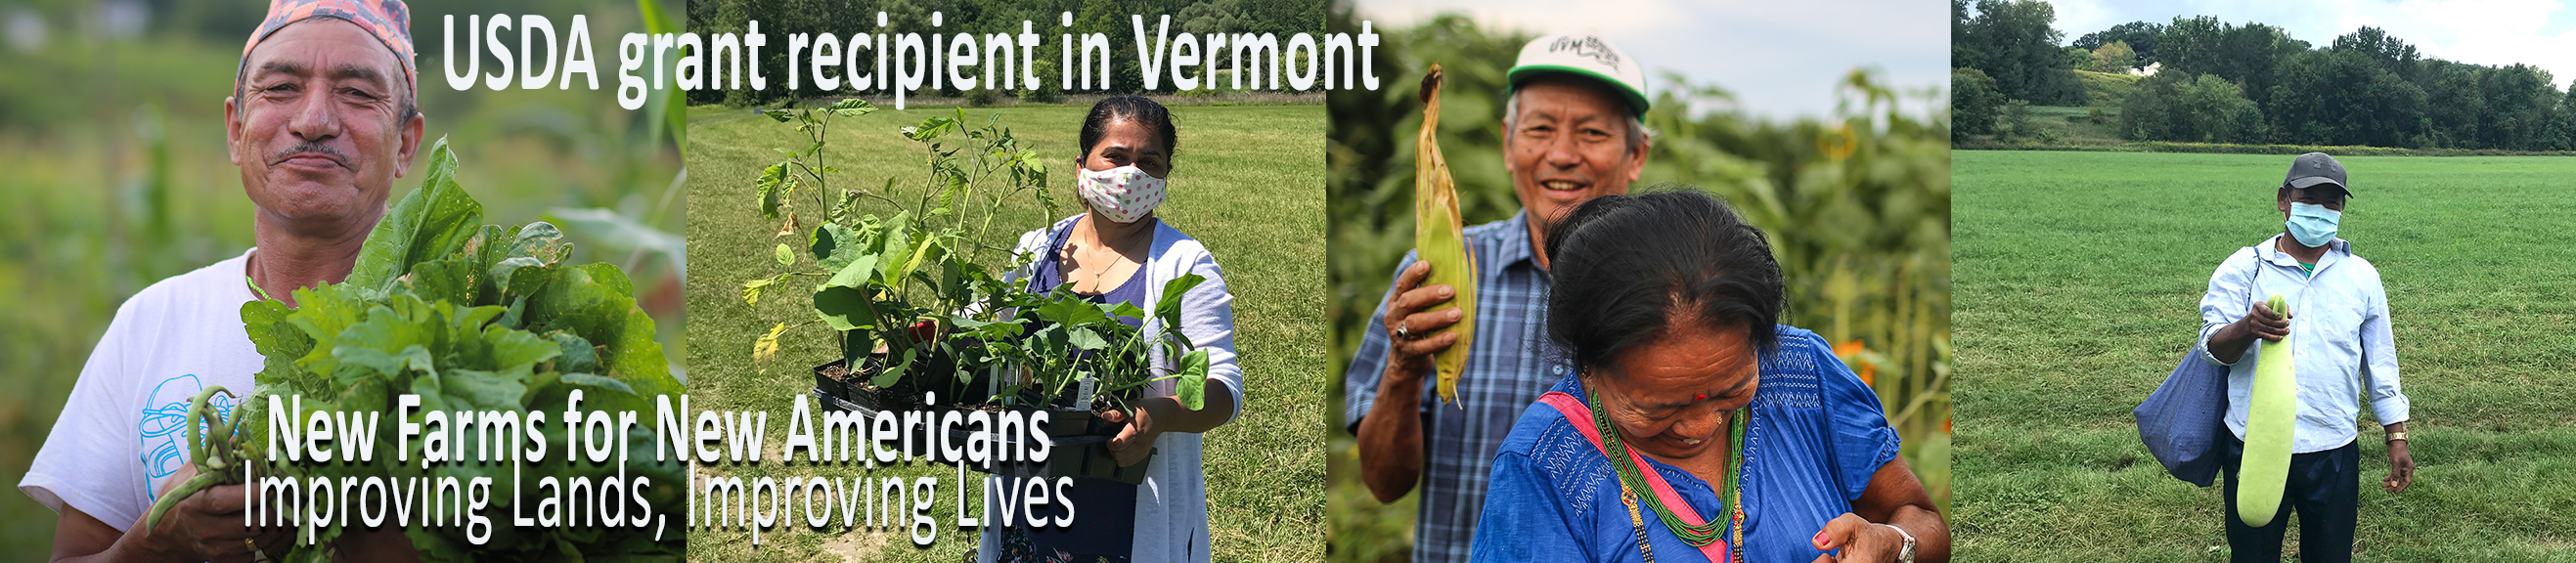 New Farms for New Americans